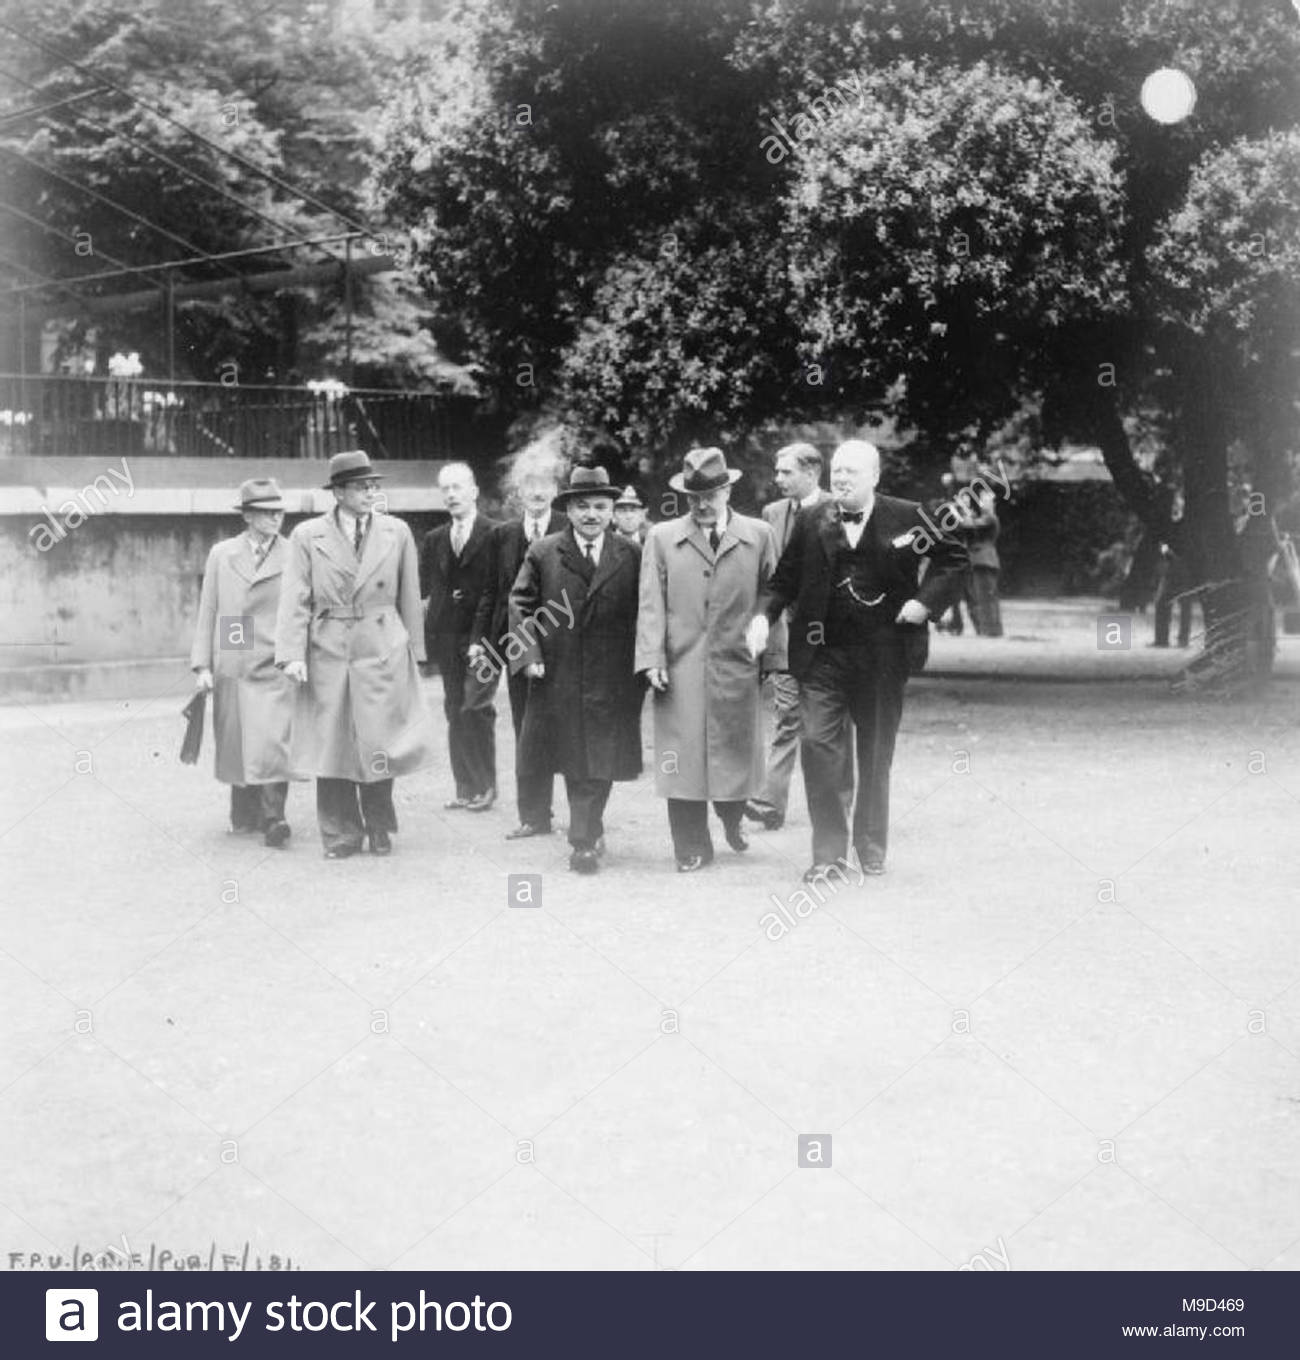 British Political Personalities 1936-1945 The Churchill Coalition Government 11 May 1940 - 23 May 1945: The Deputy Prime Minister, Clement Attlee; Secretary of State for Foreign Affairs, Anthony Eden; and the Prime Minister Winston Churchill in the garden of No 10 Downing Street with the Russian Ambassador M Maisky. - Stock Image